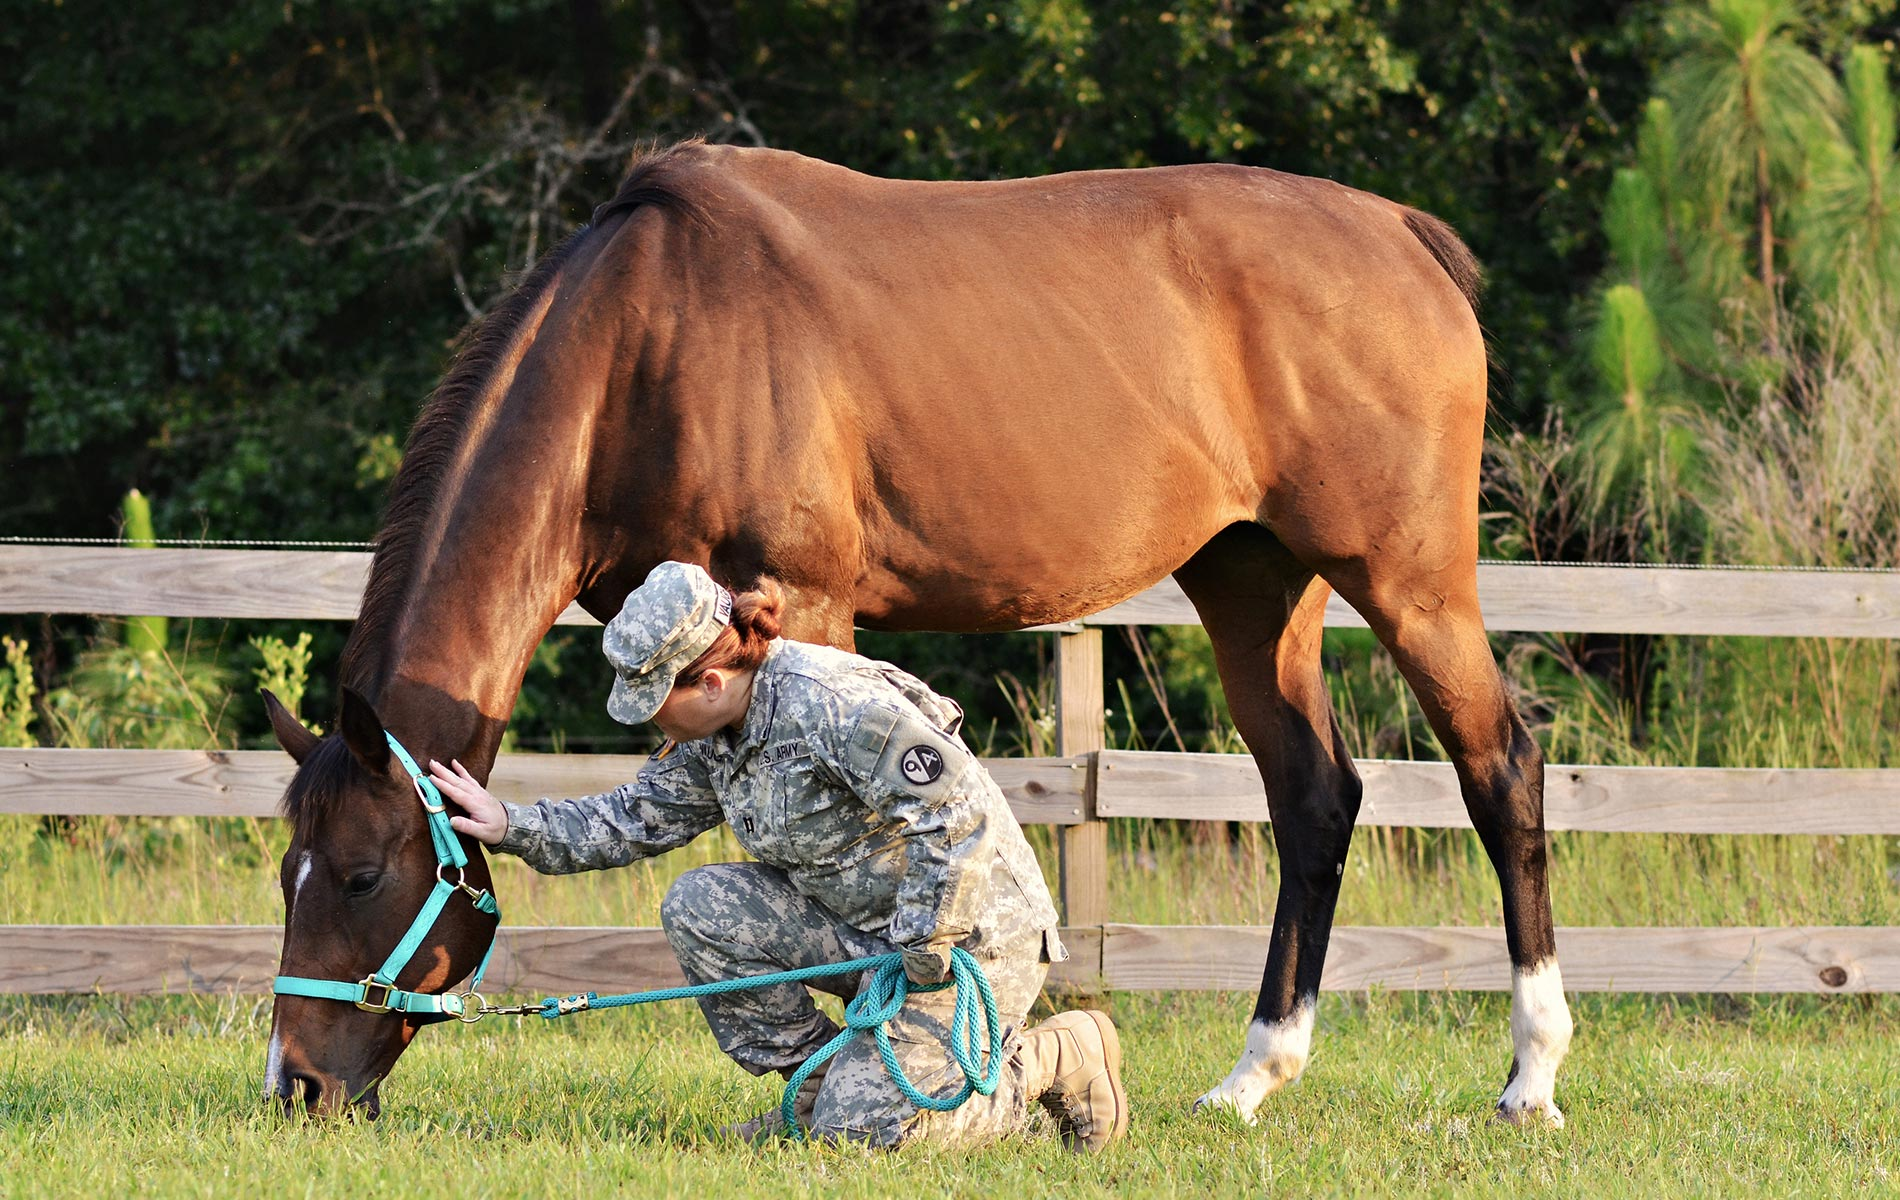 Healing Hoof Steps offers equine therapy programs for veterans, at-risk youth, couples, and all other types of people in need of mental and emotional support.